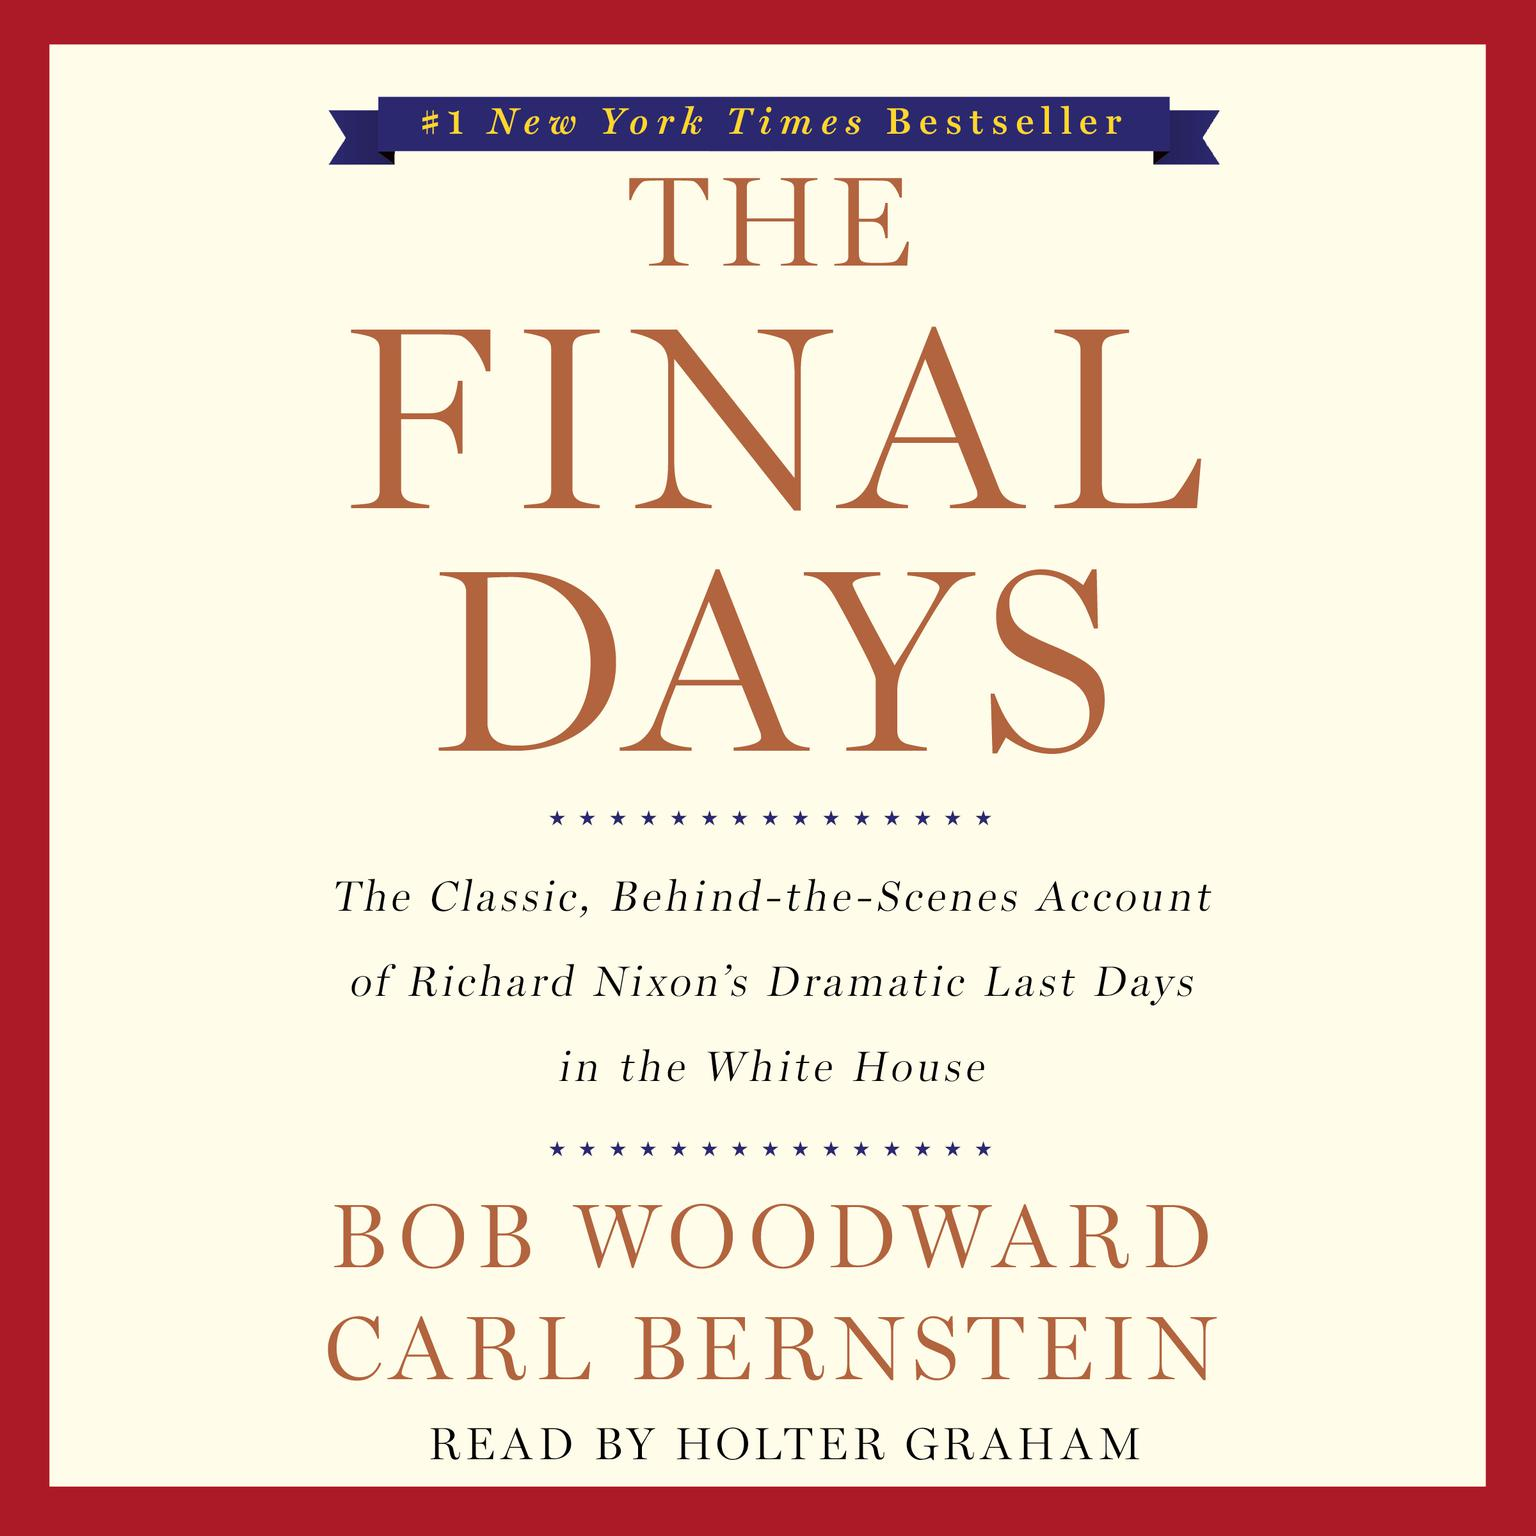 The Final Days: The Classic, Behind-the-Scenes Account of Richard Nixon's Dramatic Last Days in the White House Audiobook, by Bob Woodward